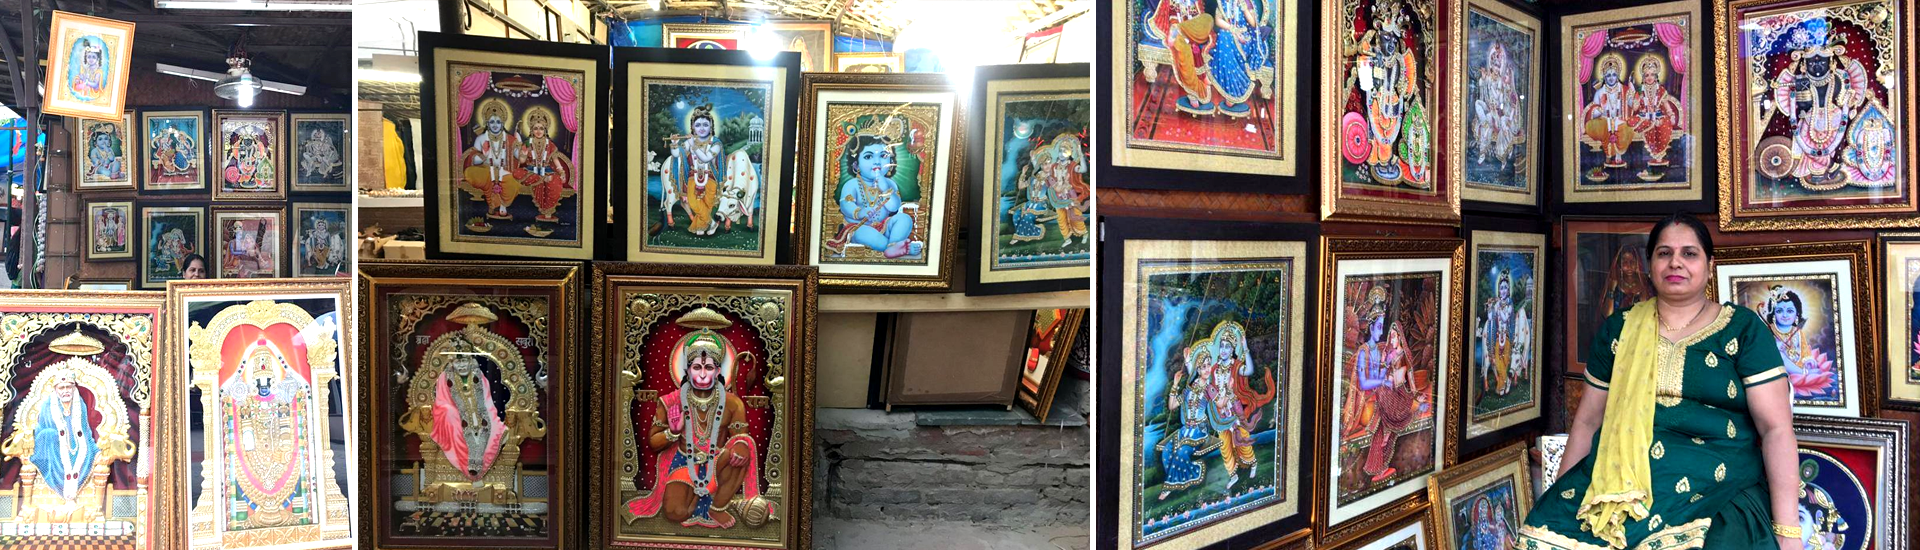 Tanjore Painting Gallery